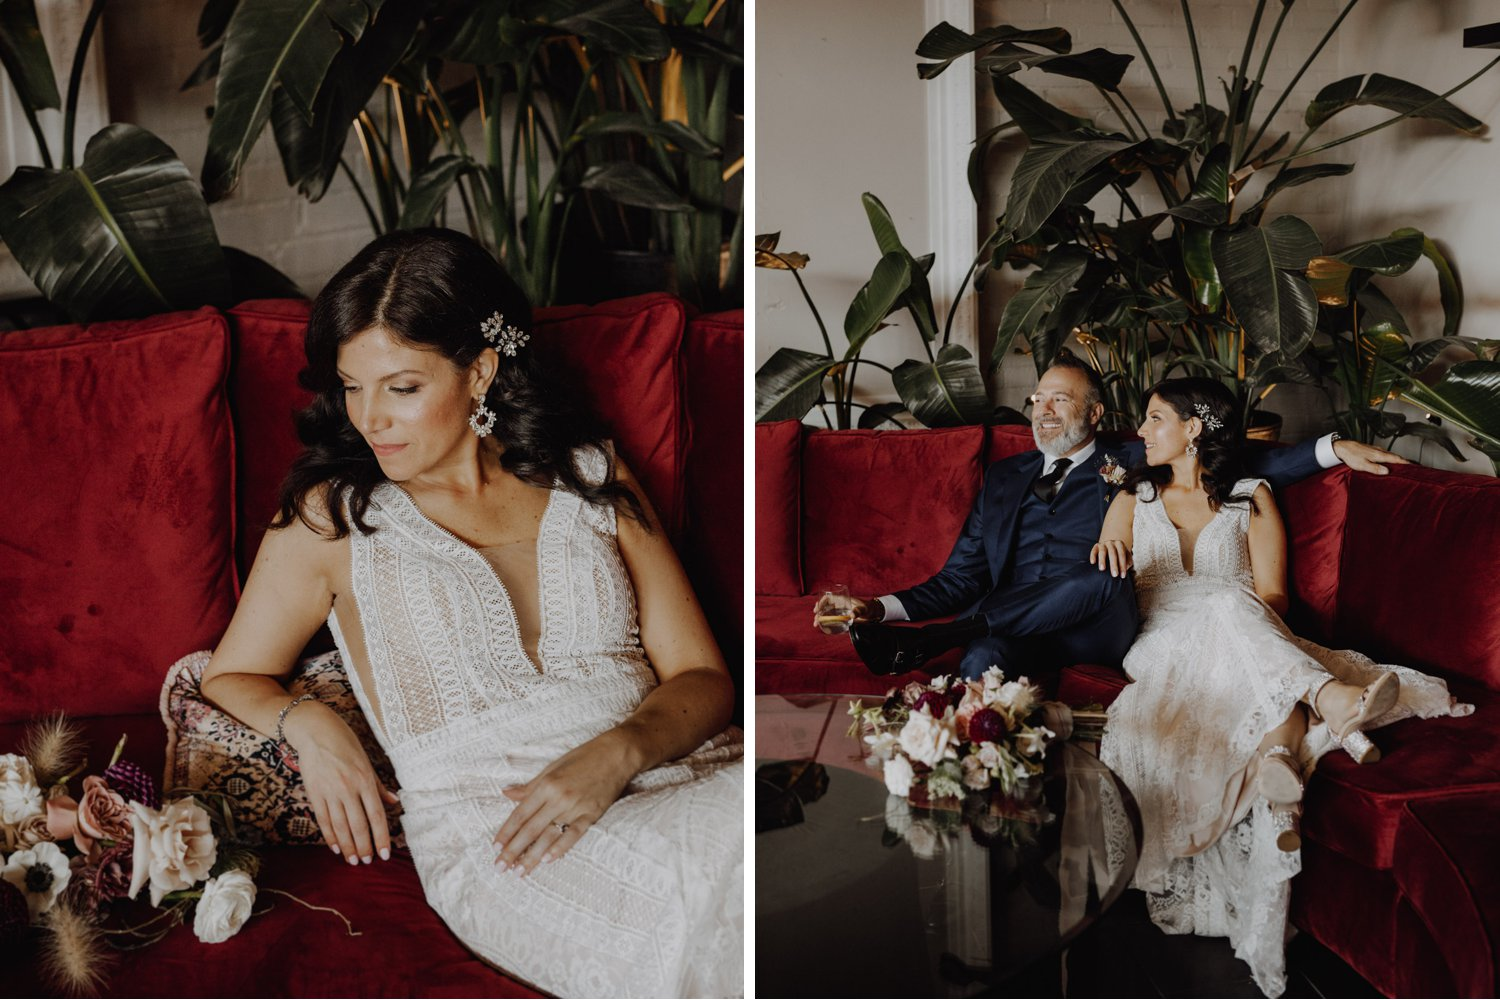 District 28 Wedding Toronto - Bride and Groom portraits on Red Couch